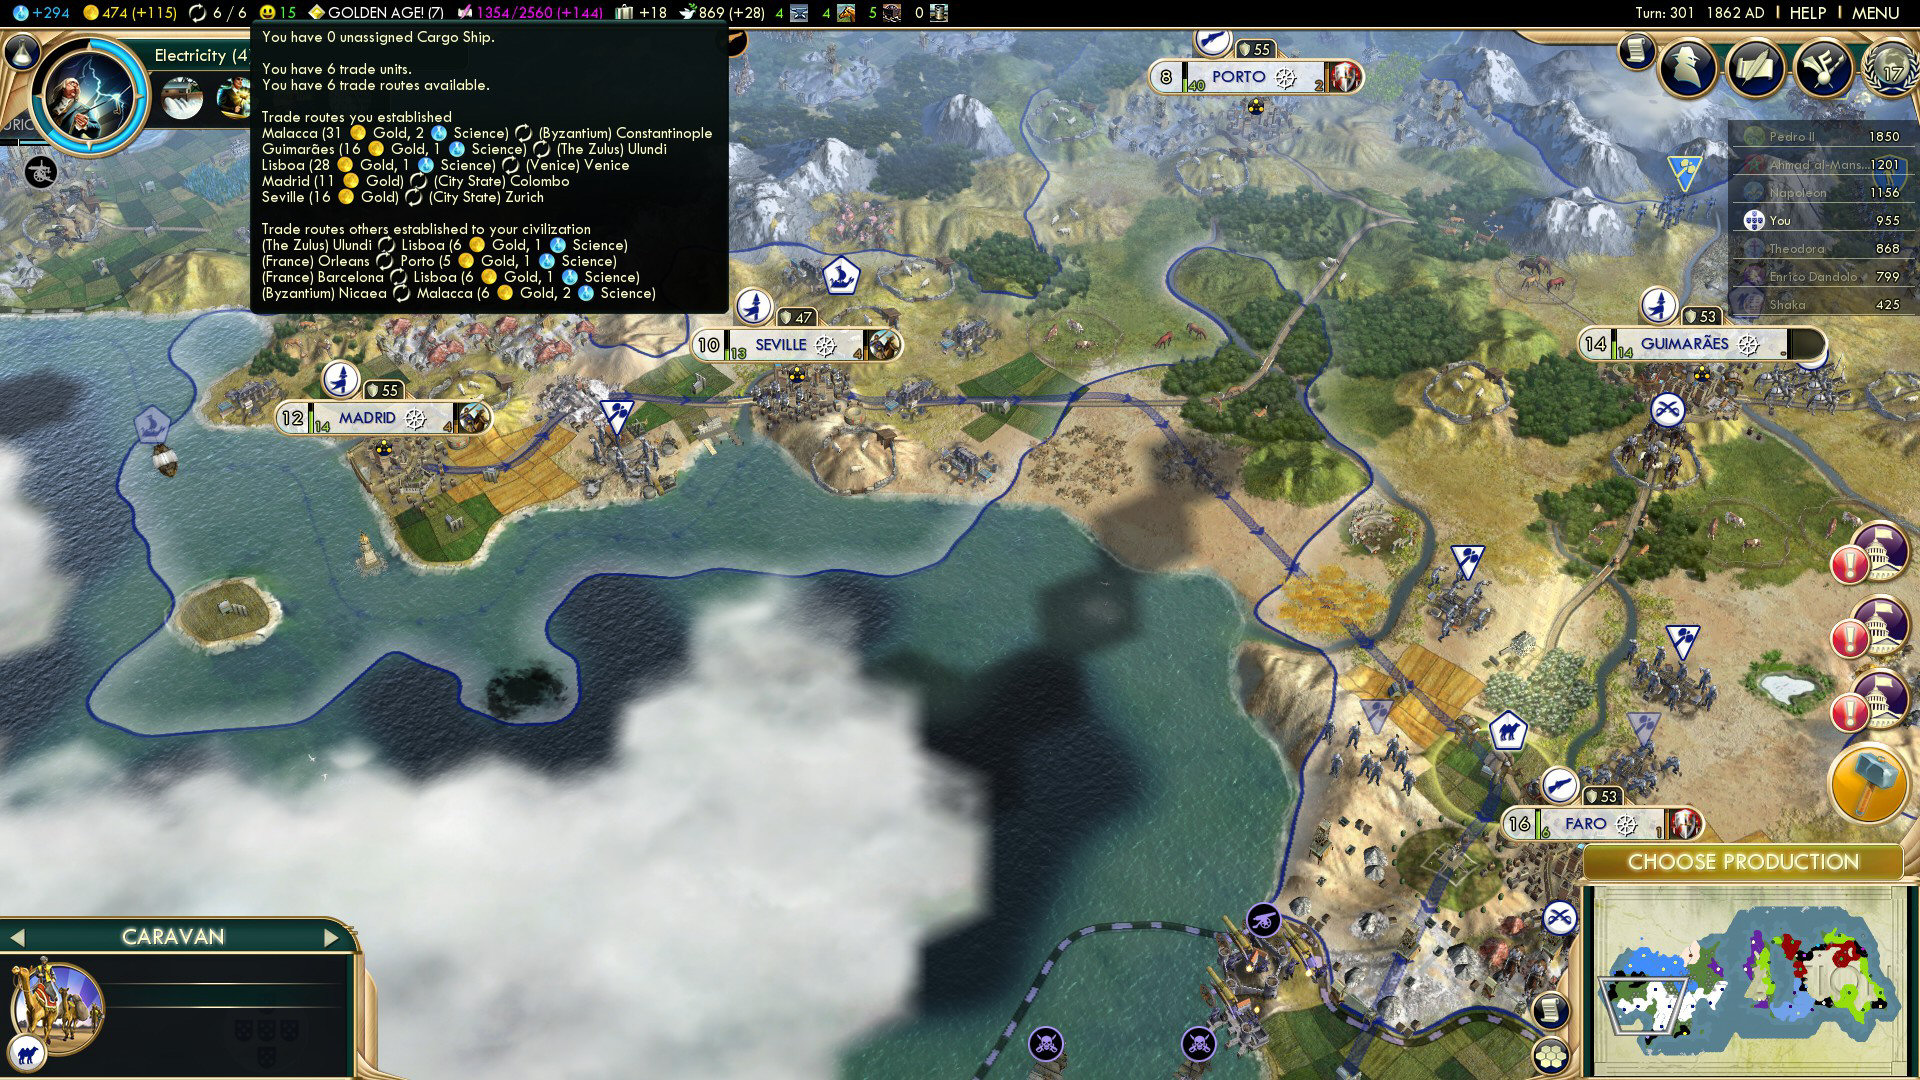 Civilization 5 brave new world guide - 5d